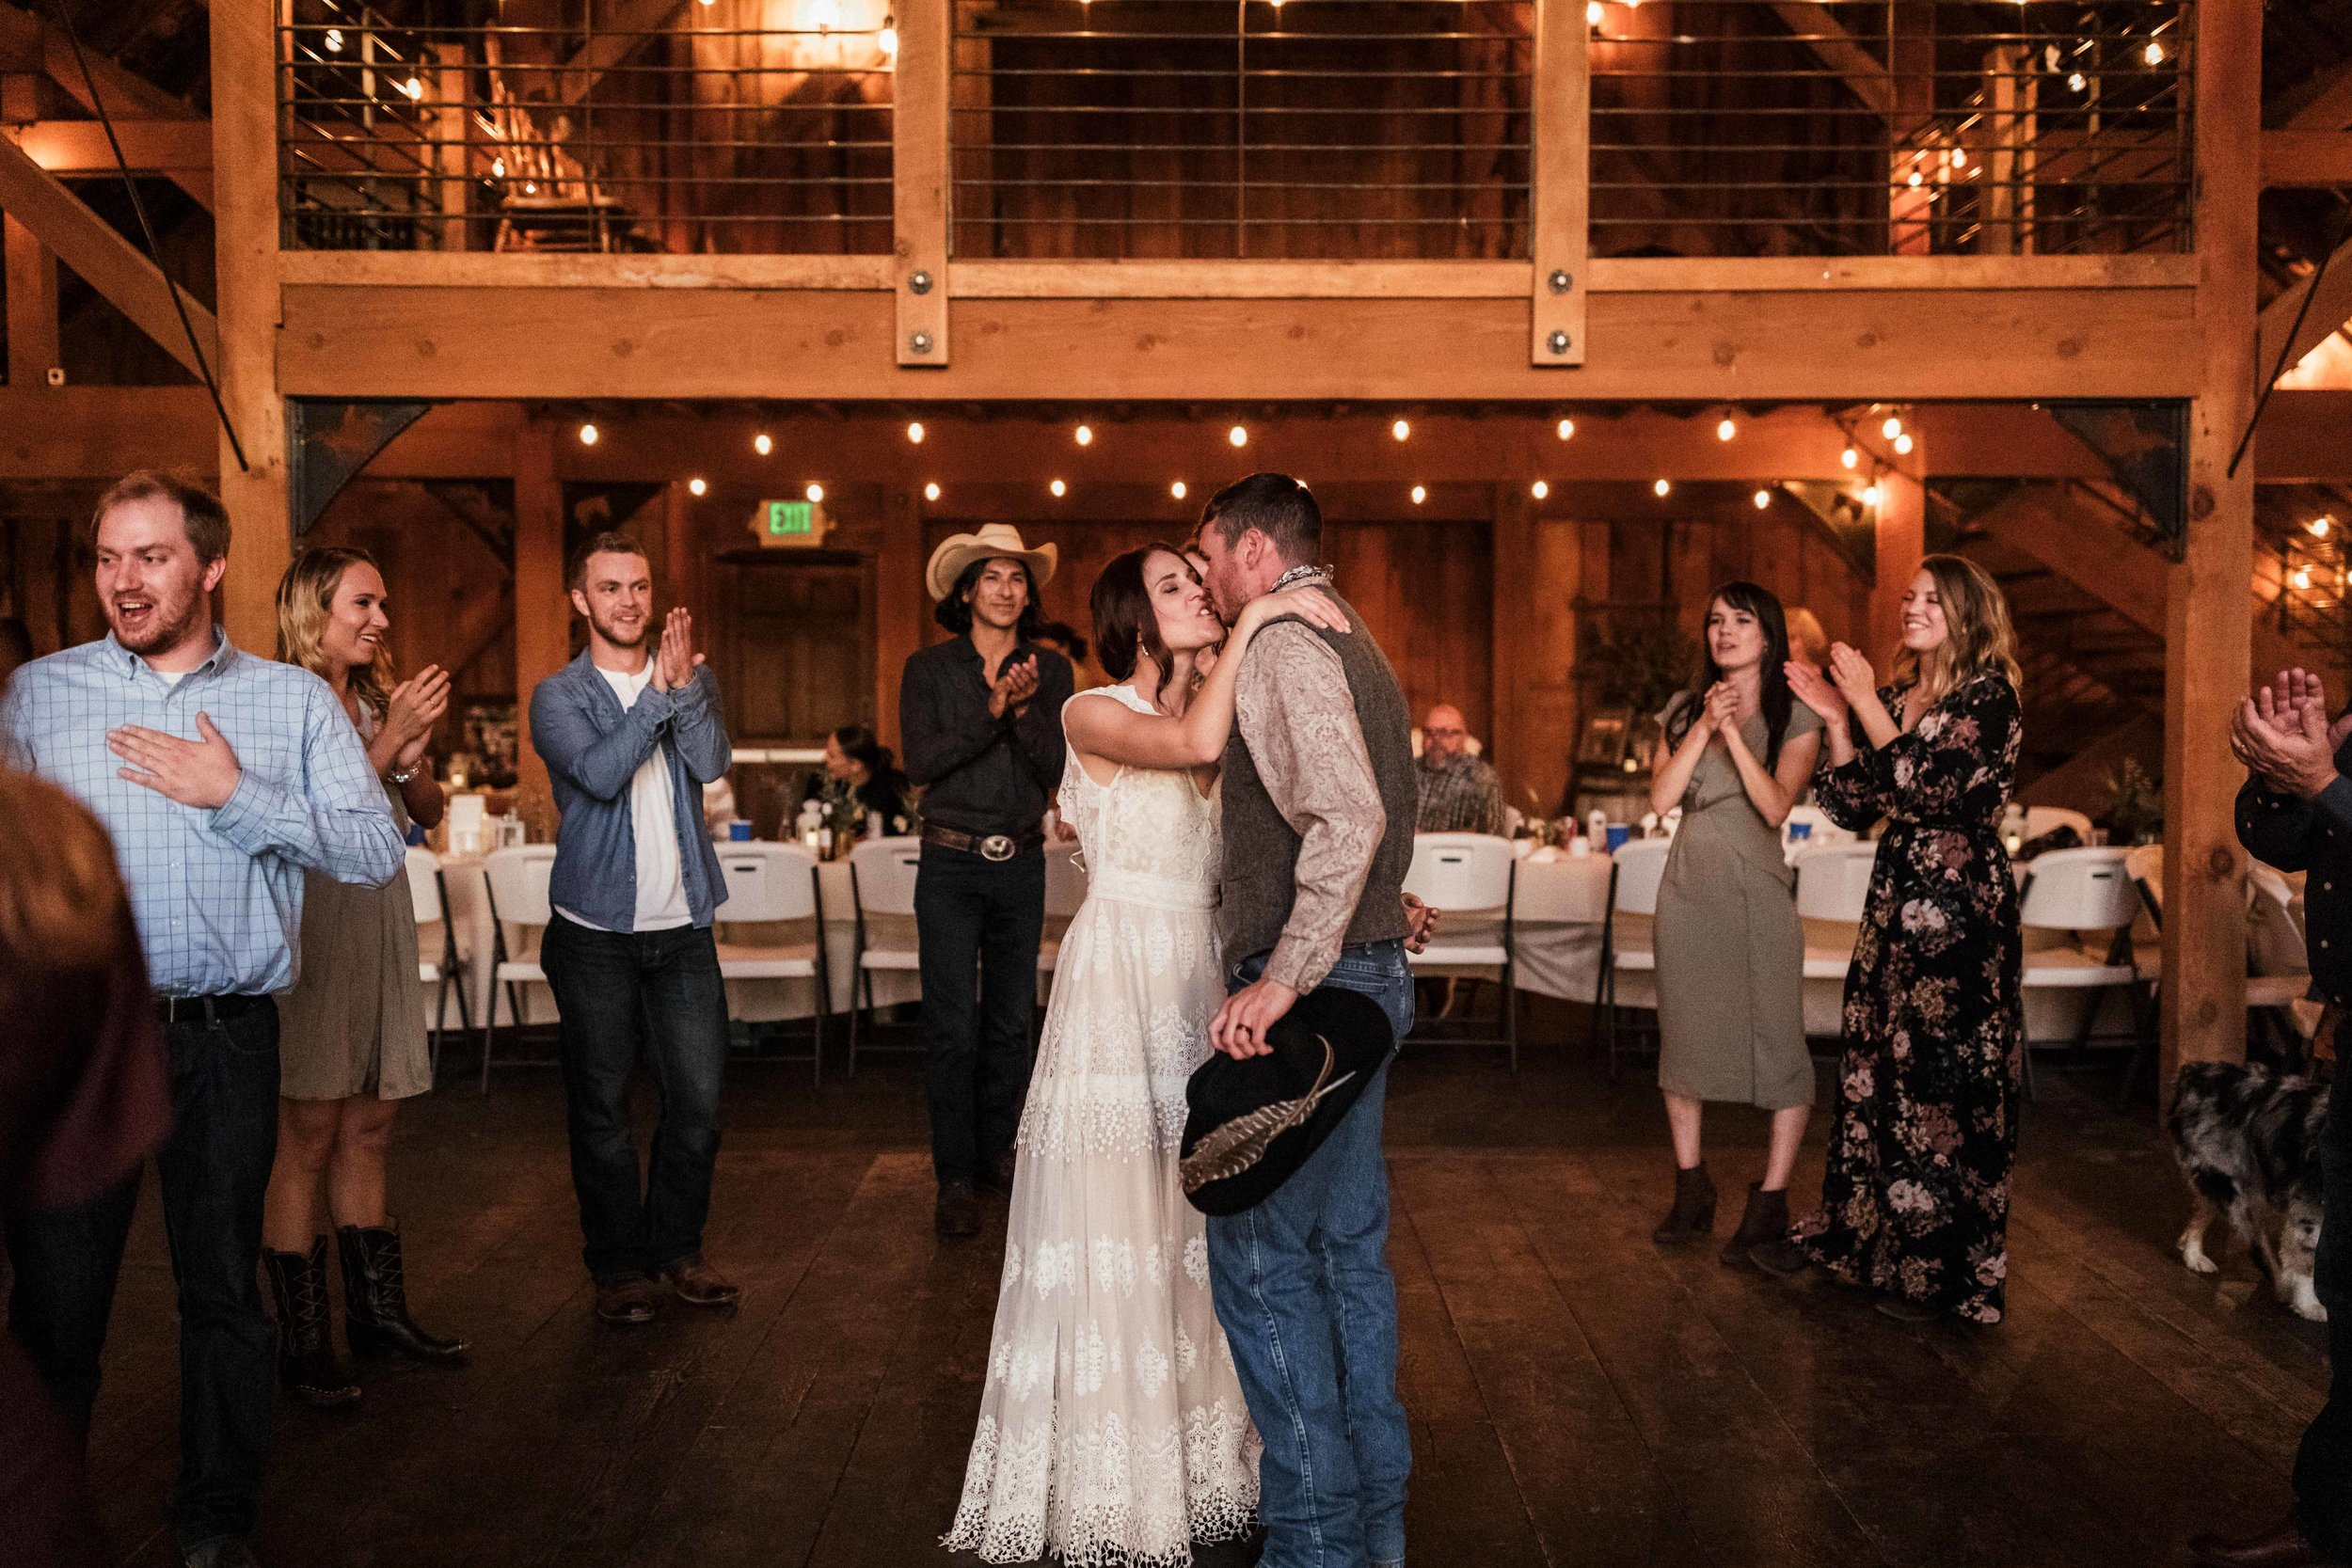 the-cattle-barn-wedding-88.jpg